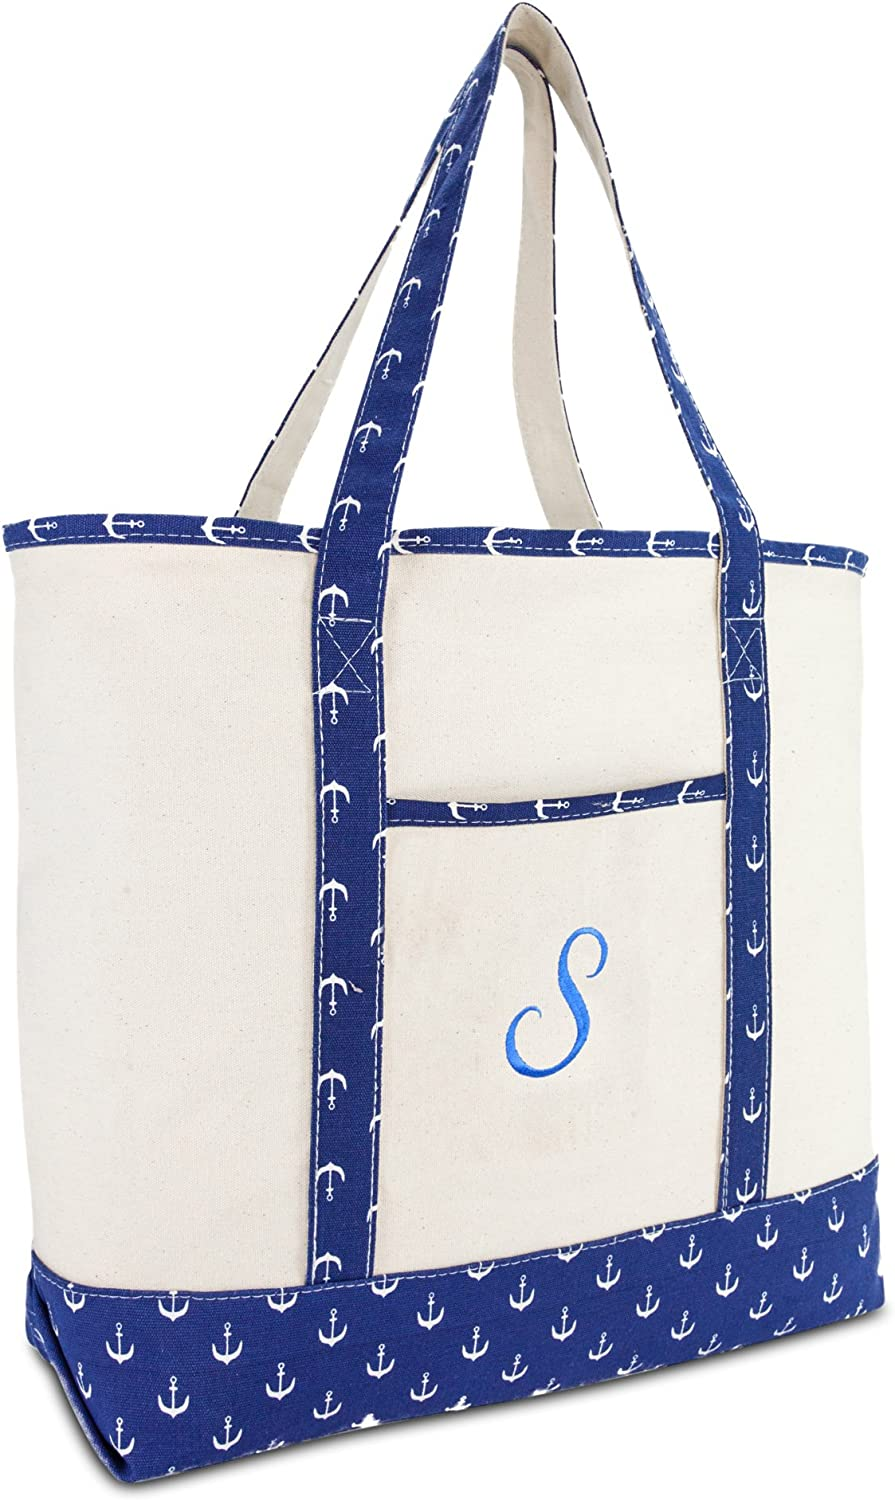 DALIX Large Tote Bag Shoulder Bags Personalized Gifts Ballent bluee Anchor A  Z